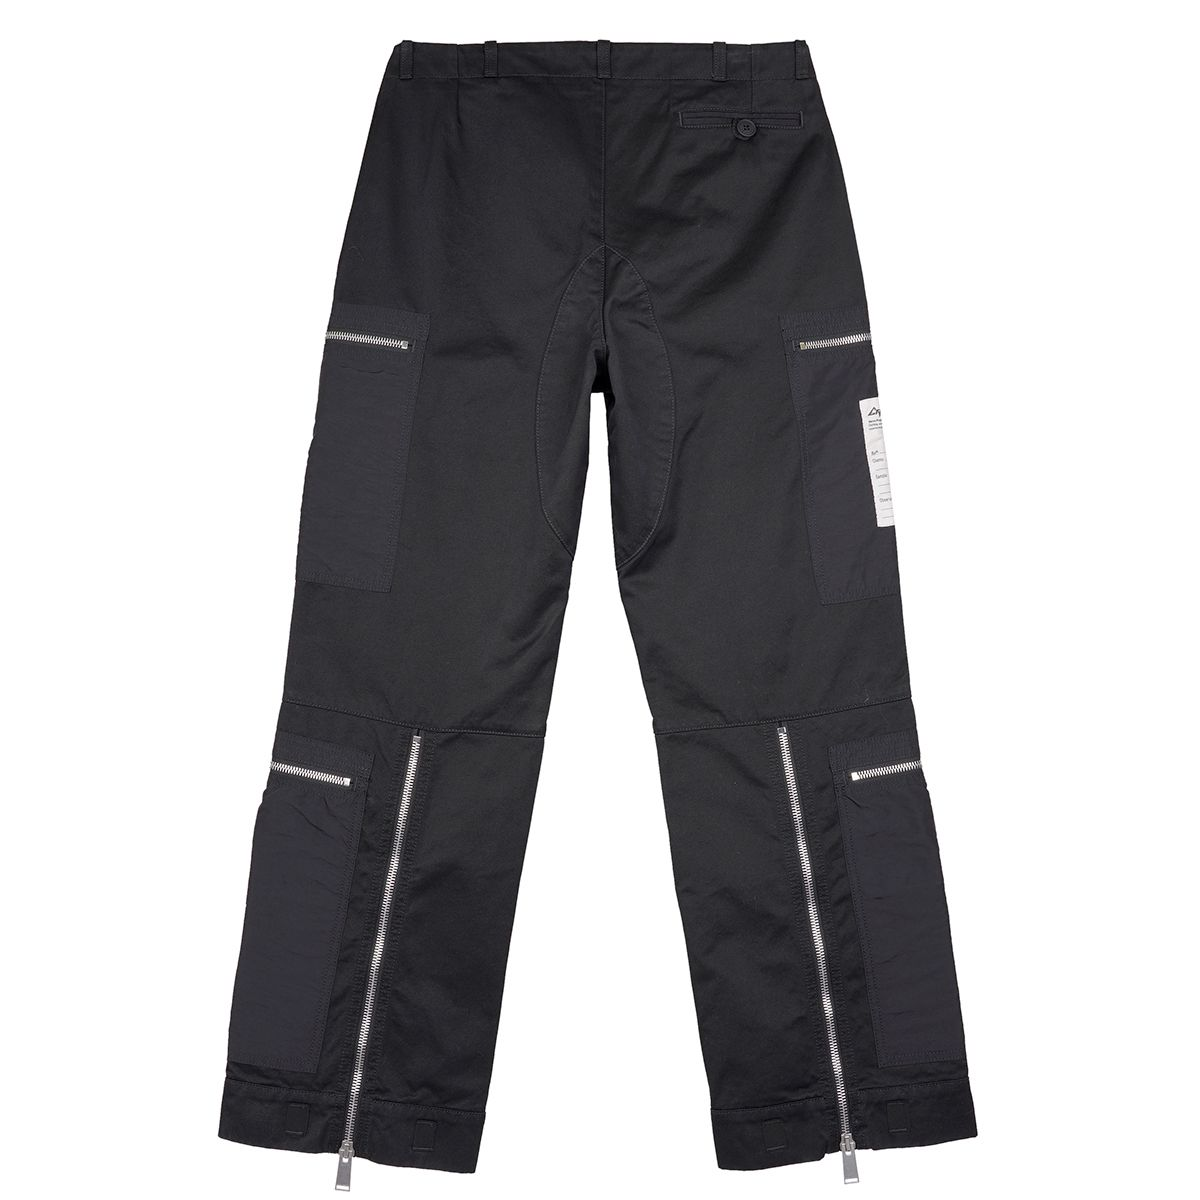 HERON PRESTON MILITARY COTTON NYLON PANTS / 1000 : BLACK NO COLOR